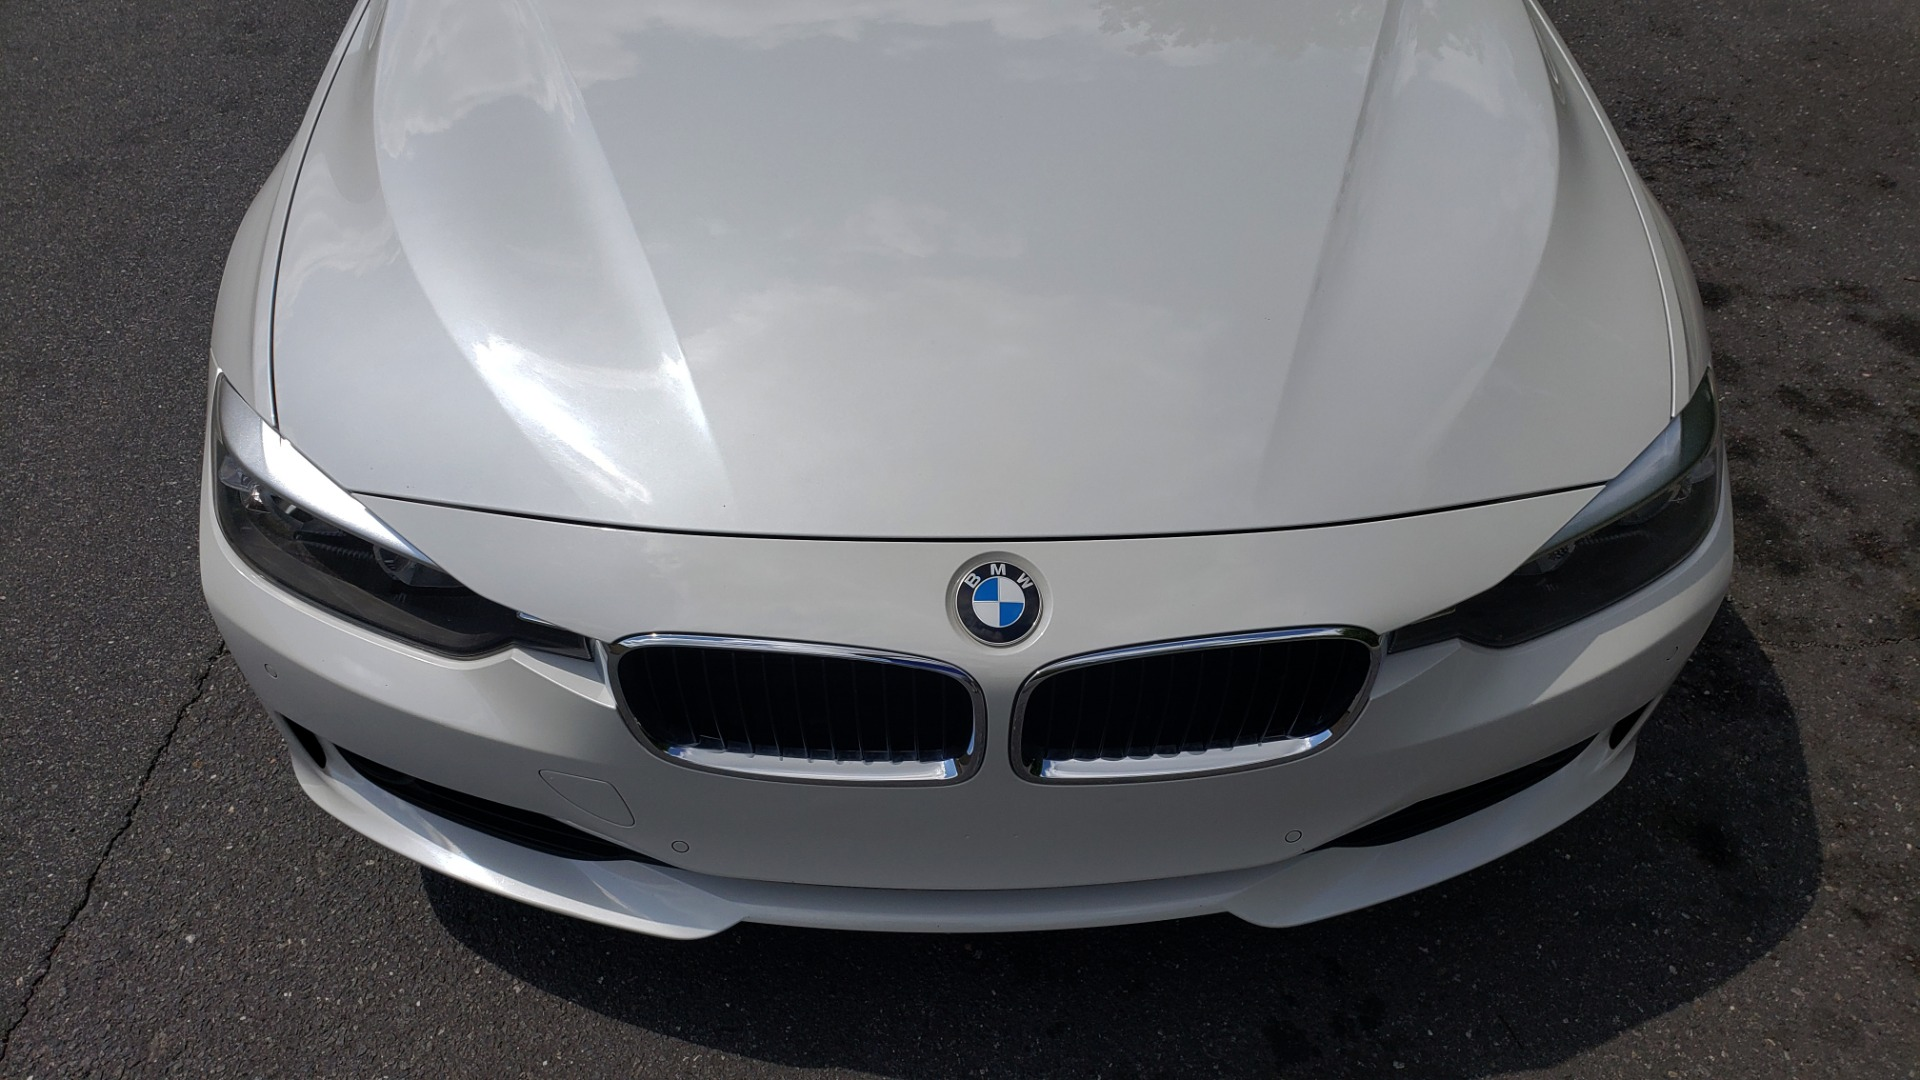 Used 2015 BMW 3 SERIES 328I PREMIUM / NAV / SUNROOF / HTD STS / DRIVER ASST / REARVIEW for sale Sold at Formula Imports in Charlotte NC 28227 16